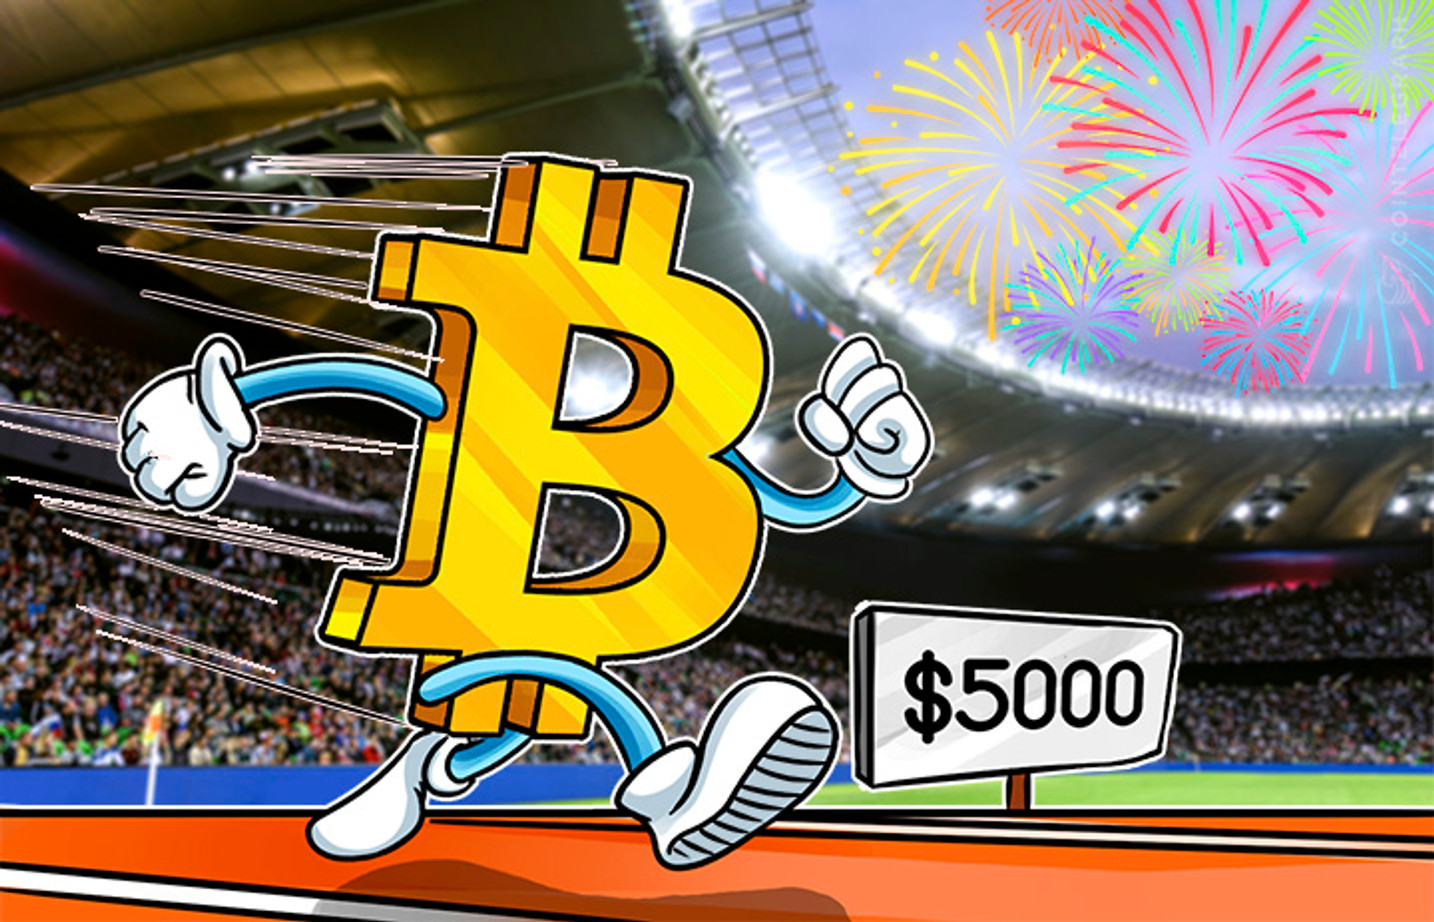 Bitcoin Price Soars to $5,000 Followed By Substantial Sell Off